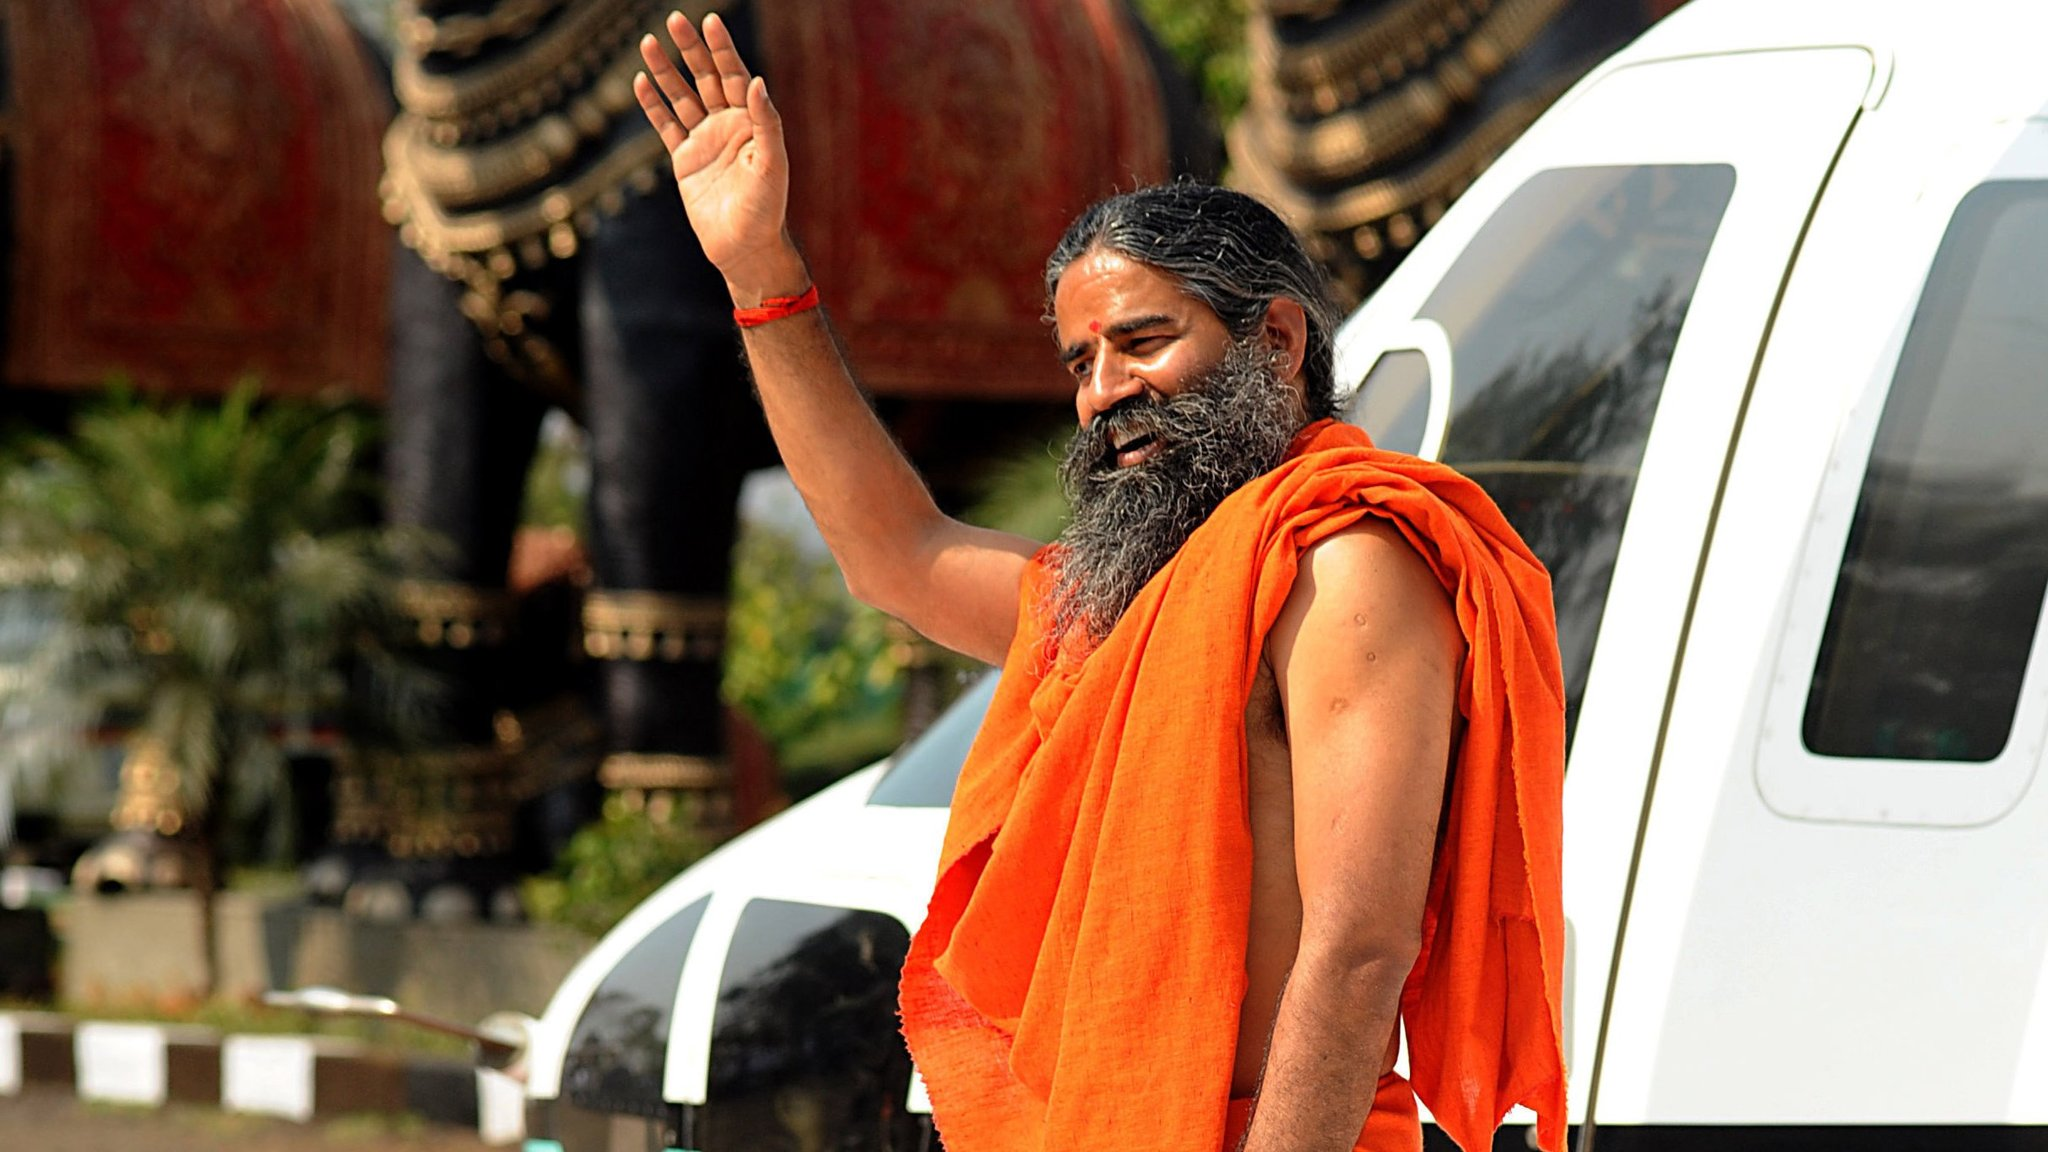 Indian Guru Baba Ramdev Expands Into Private Security Financial Times